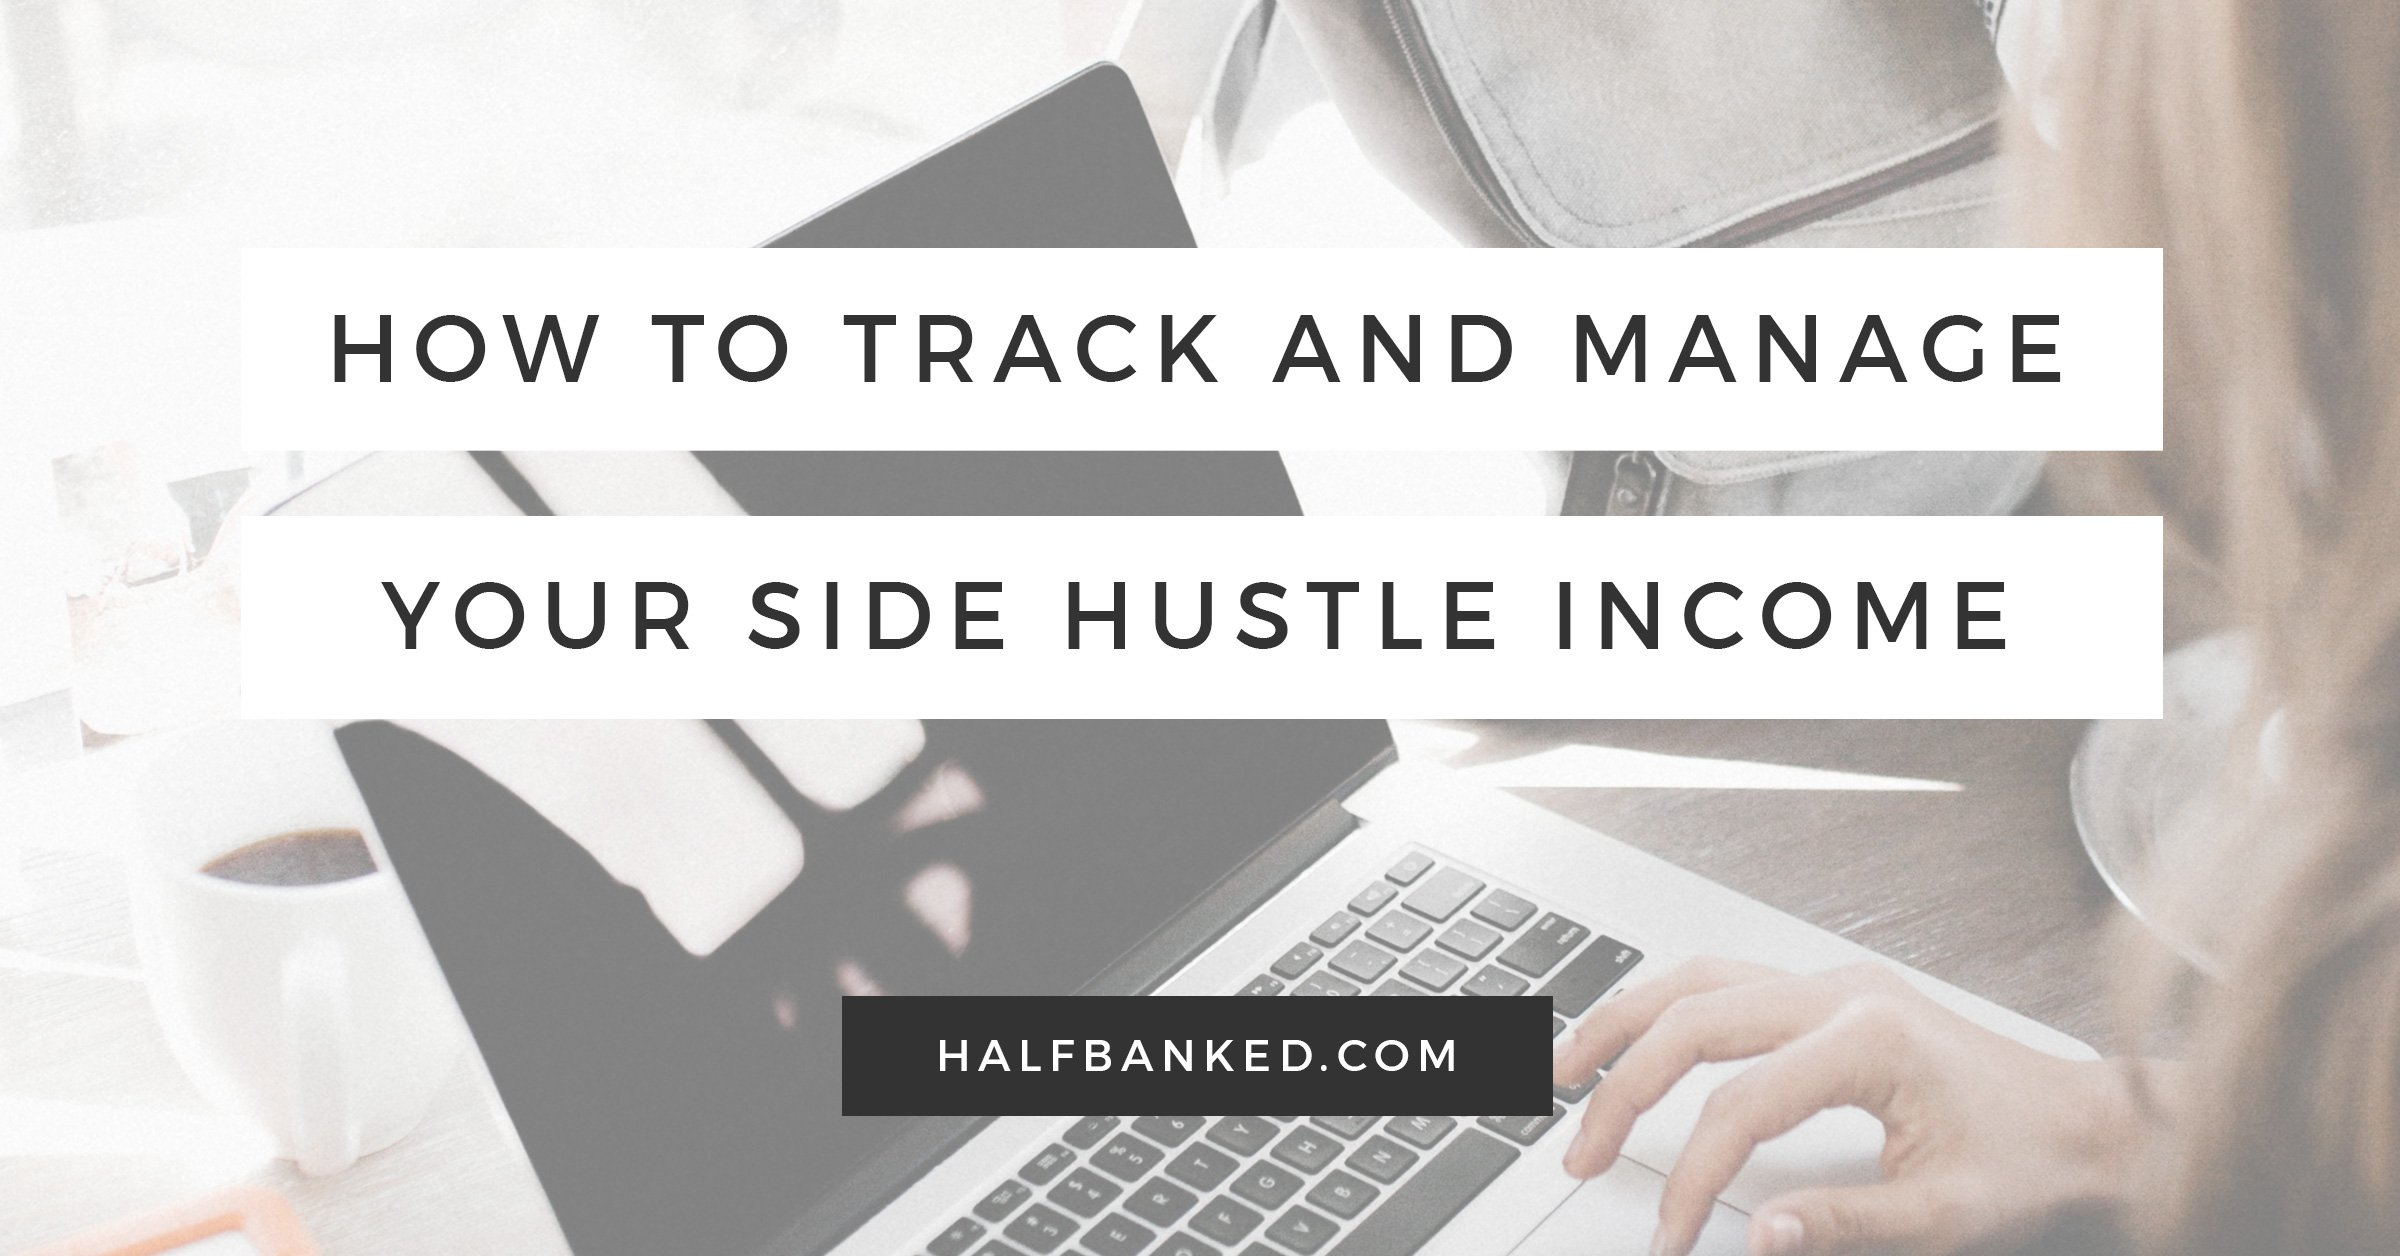 Registered Mail Receipt Exactly How To Track And Manage Your Side Hustle Income  Half  Tsp100 Receipt Printer Pdf with St Louis City Personal Property Tax Receipt Excel Exactly How To Track And Manage Your Side Hustle Income  Half Banked Invoice Stamps Pdf